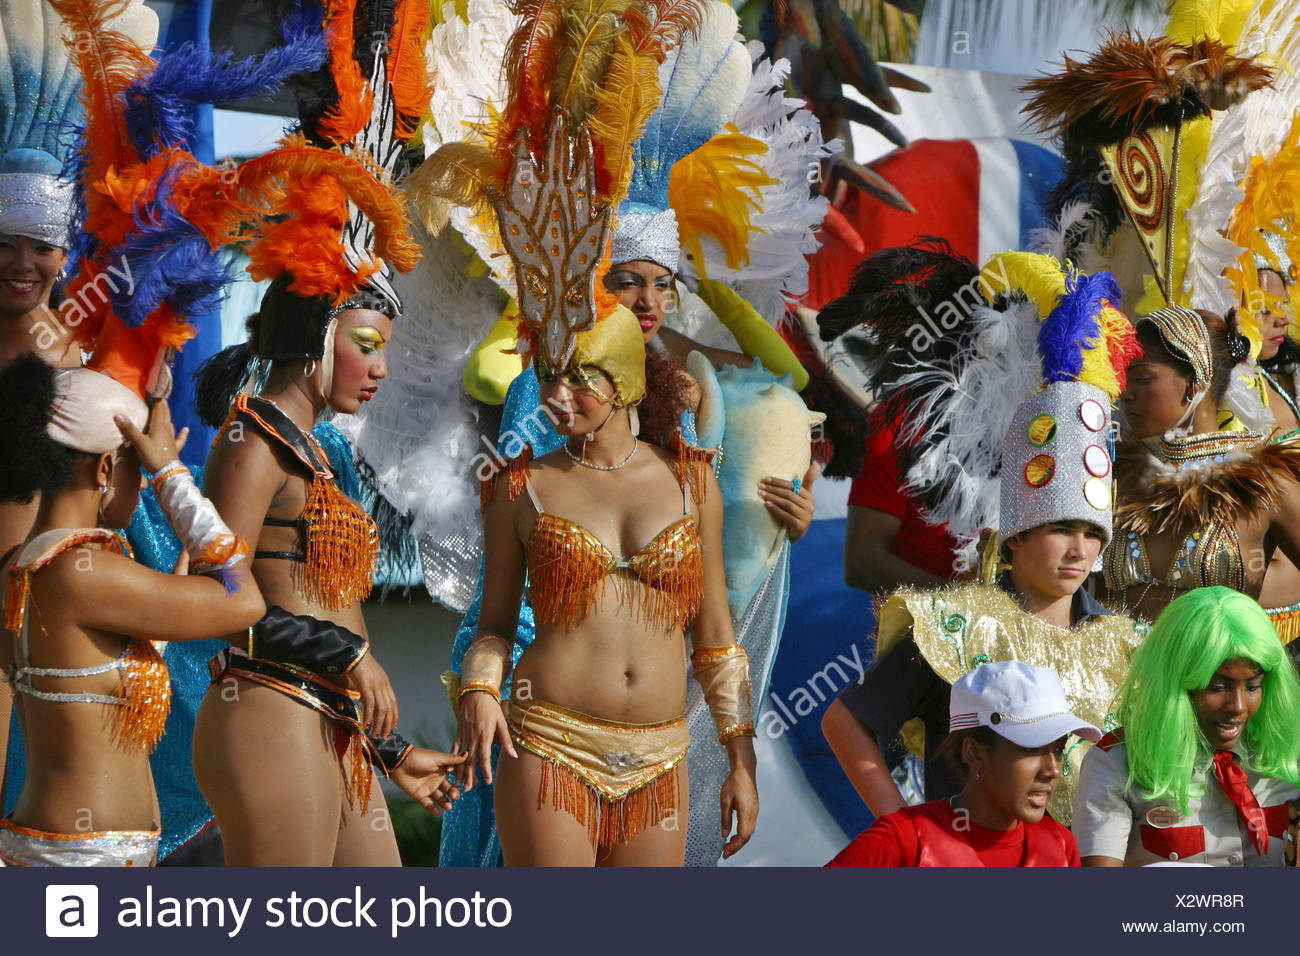 pretty women with feathered headdress on national holiday, Dominican Republic, La Romana, Bayahibe - Stock Image